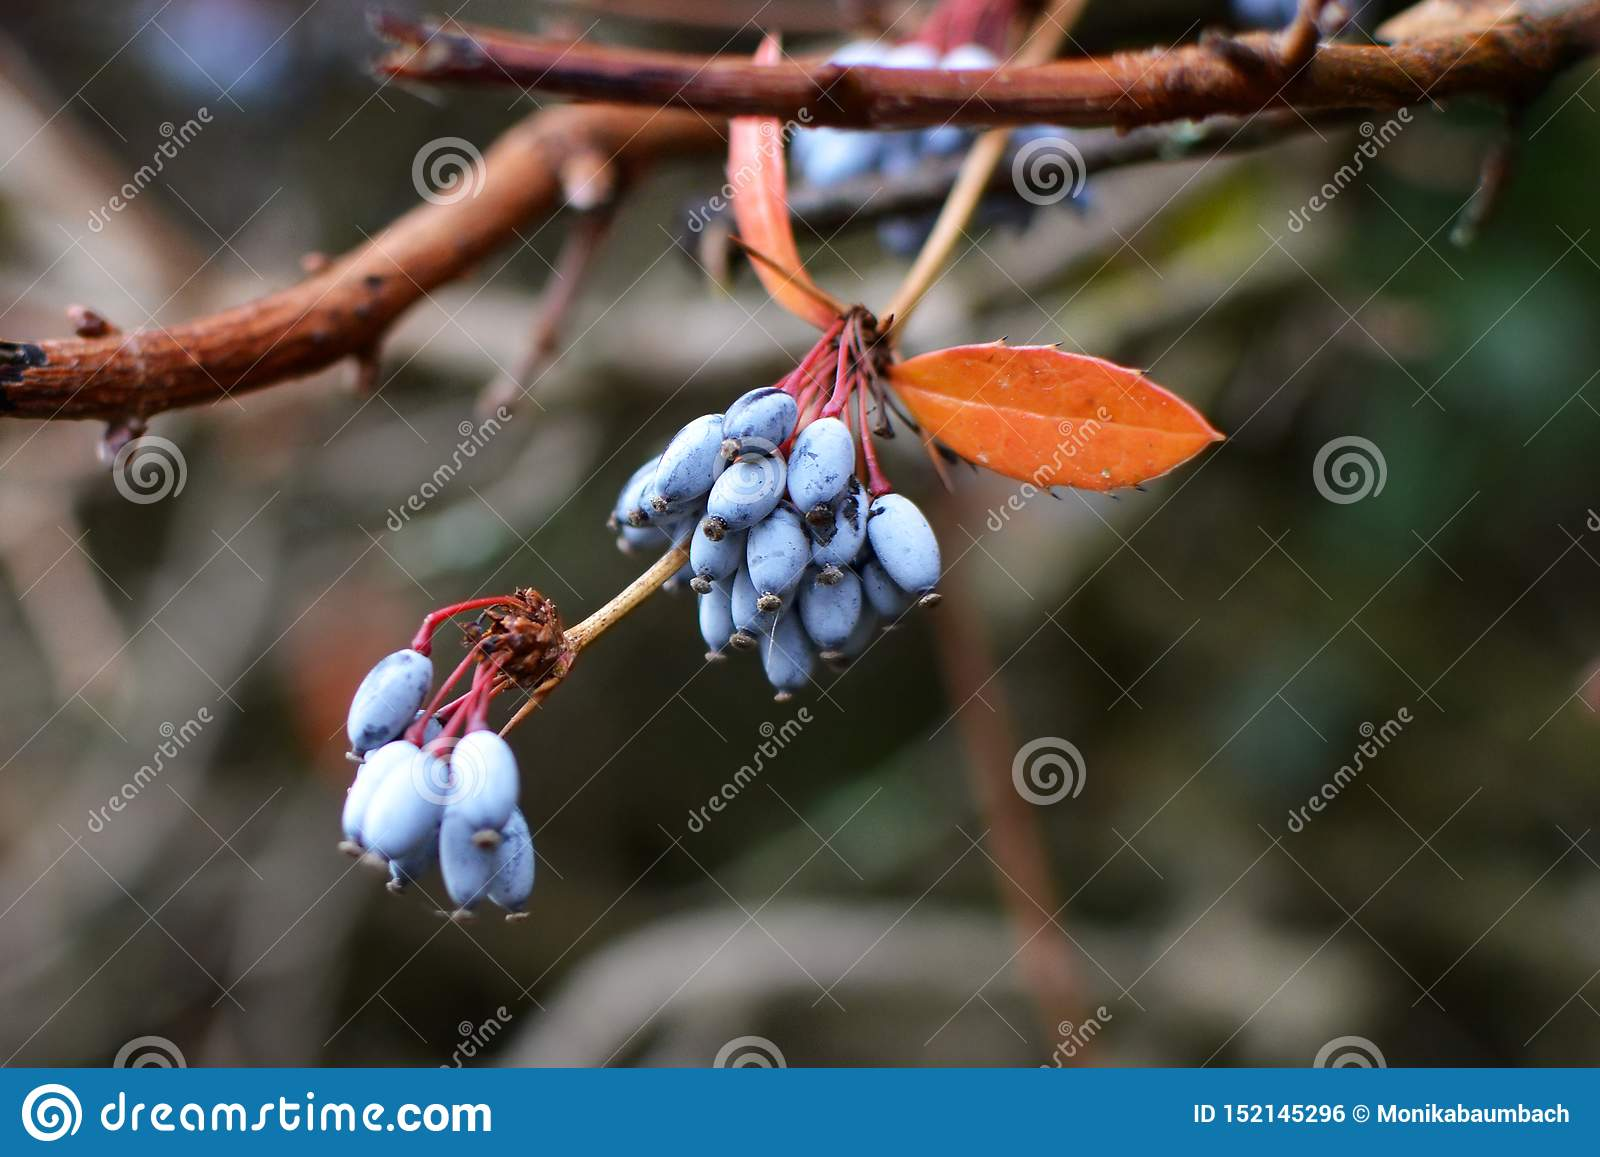 Branch of blue common or European barberry Berberis vulgaris with orange colored leaf in autumn